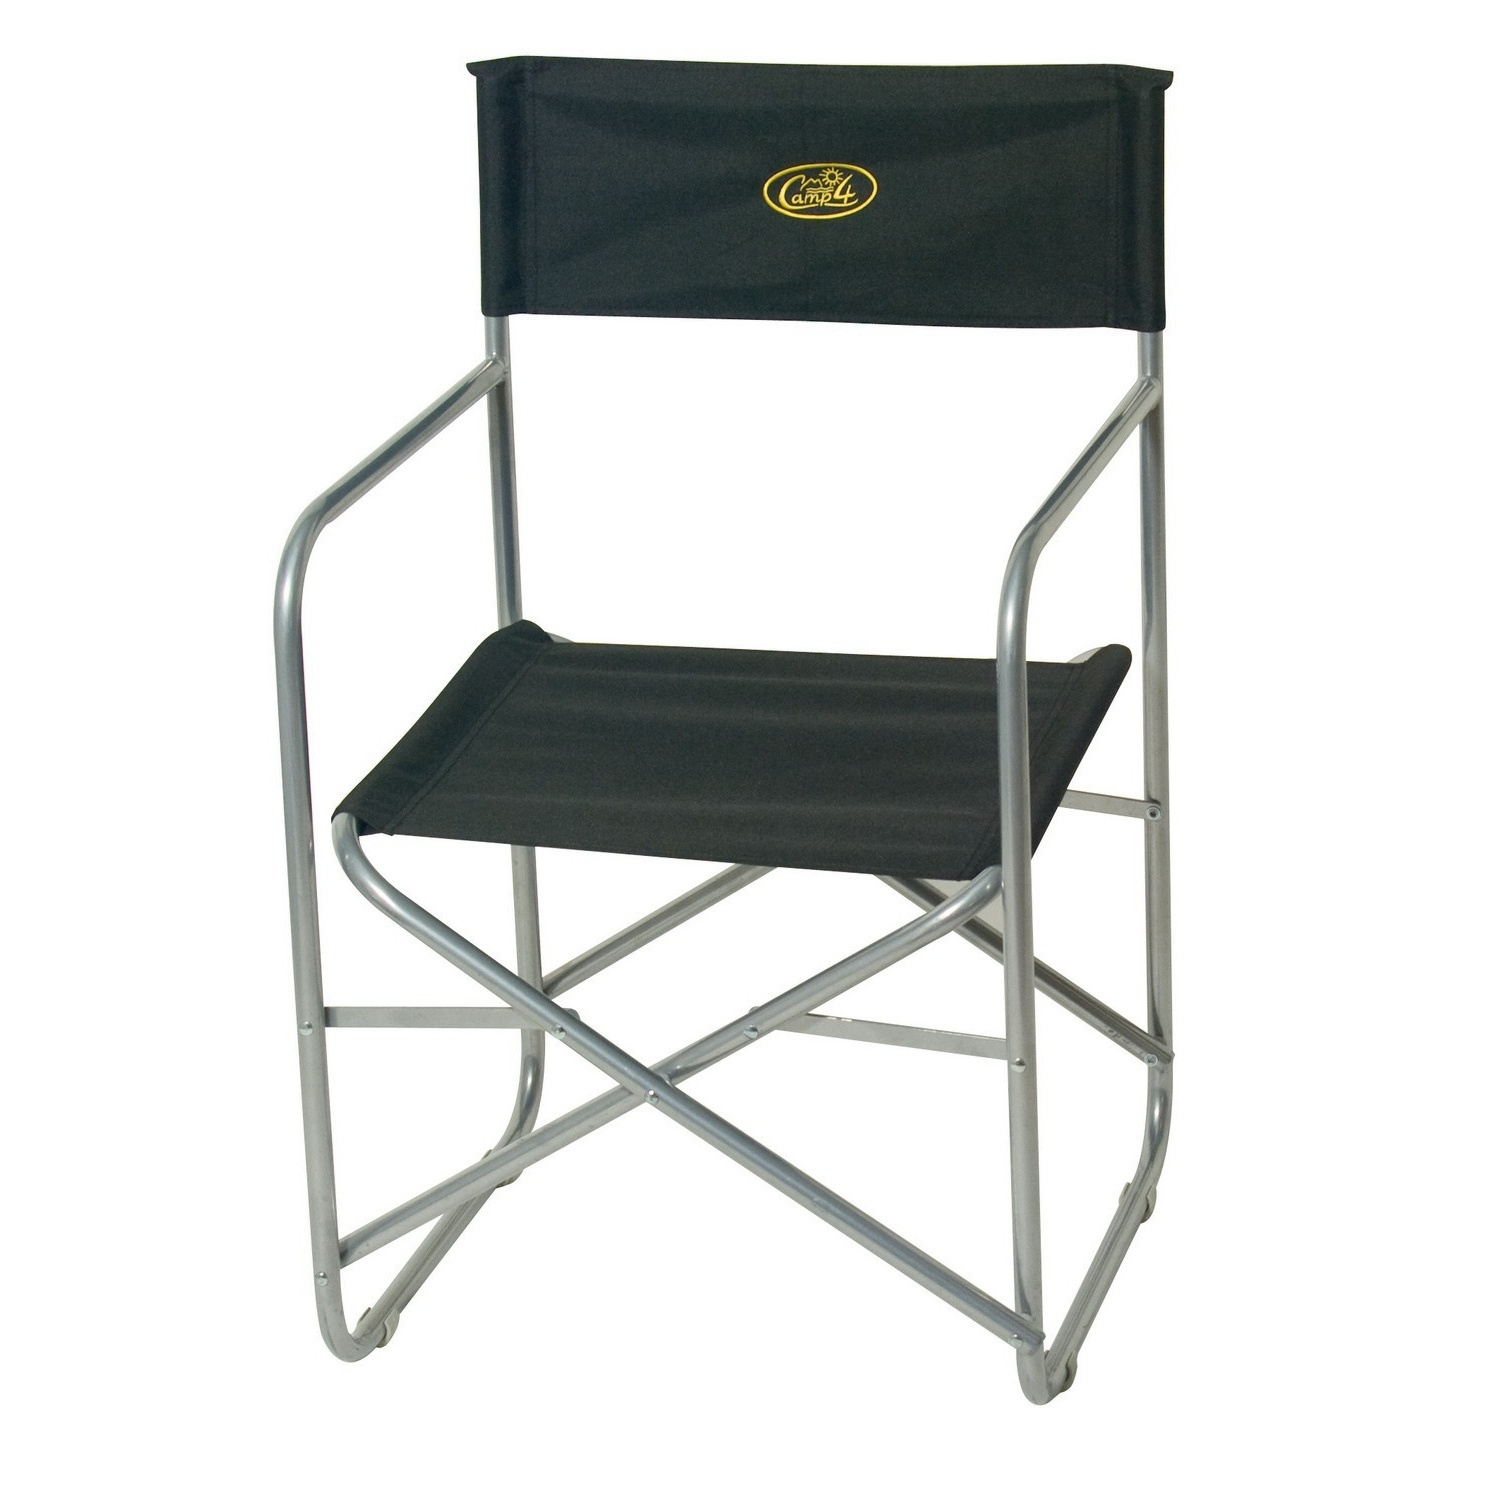 Camp 4 Little Joe Directors Chair EBay